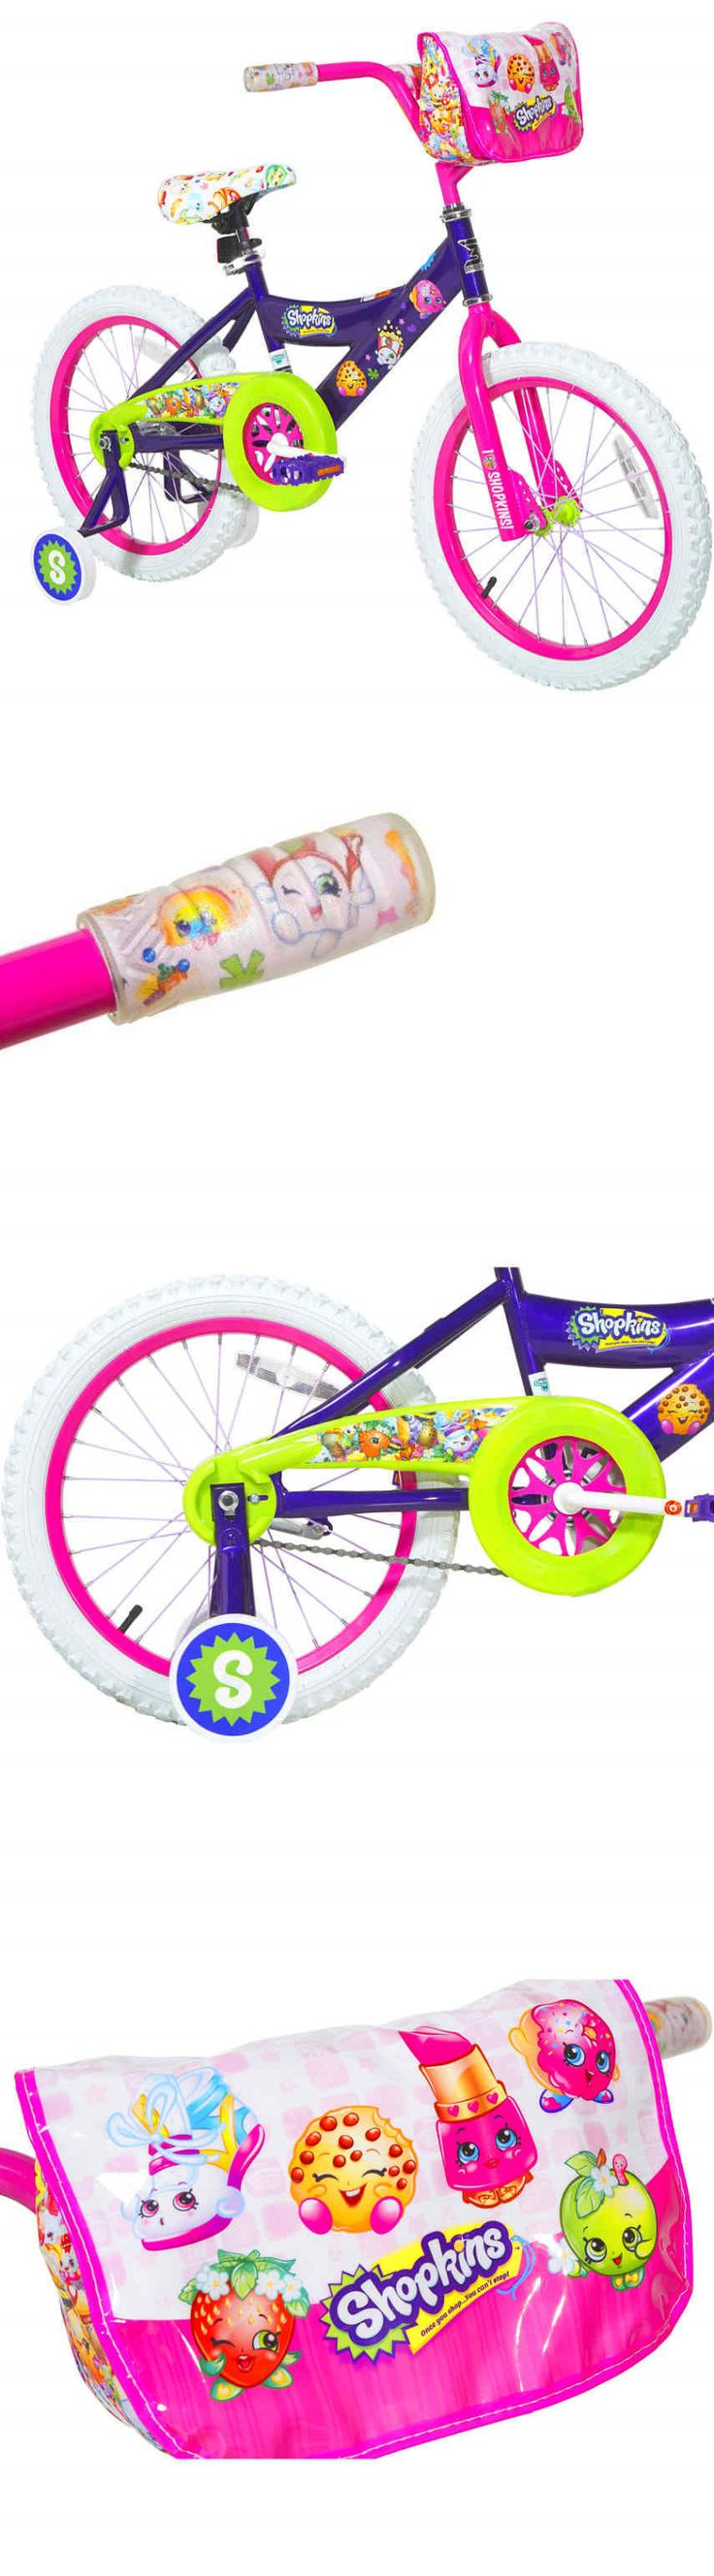 Other Cycling 2904: 18 Dynacraft Shopkins Girls Bike Steel Frame Training Wheels Kids Bicycle New -> BUY IT NOW ONLY: $168.18 on eBay!